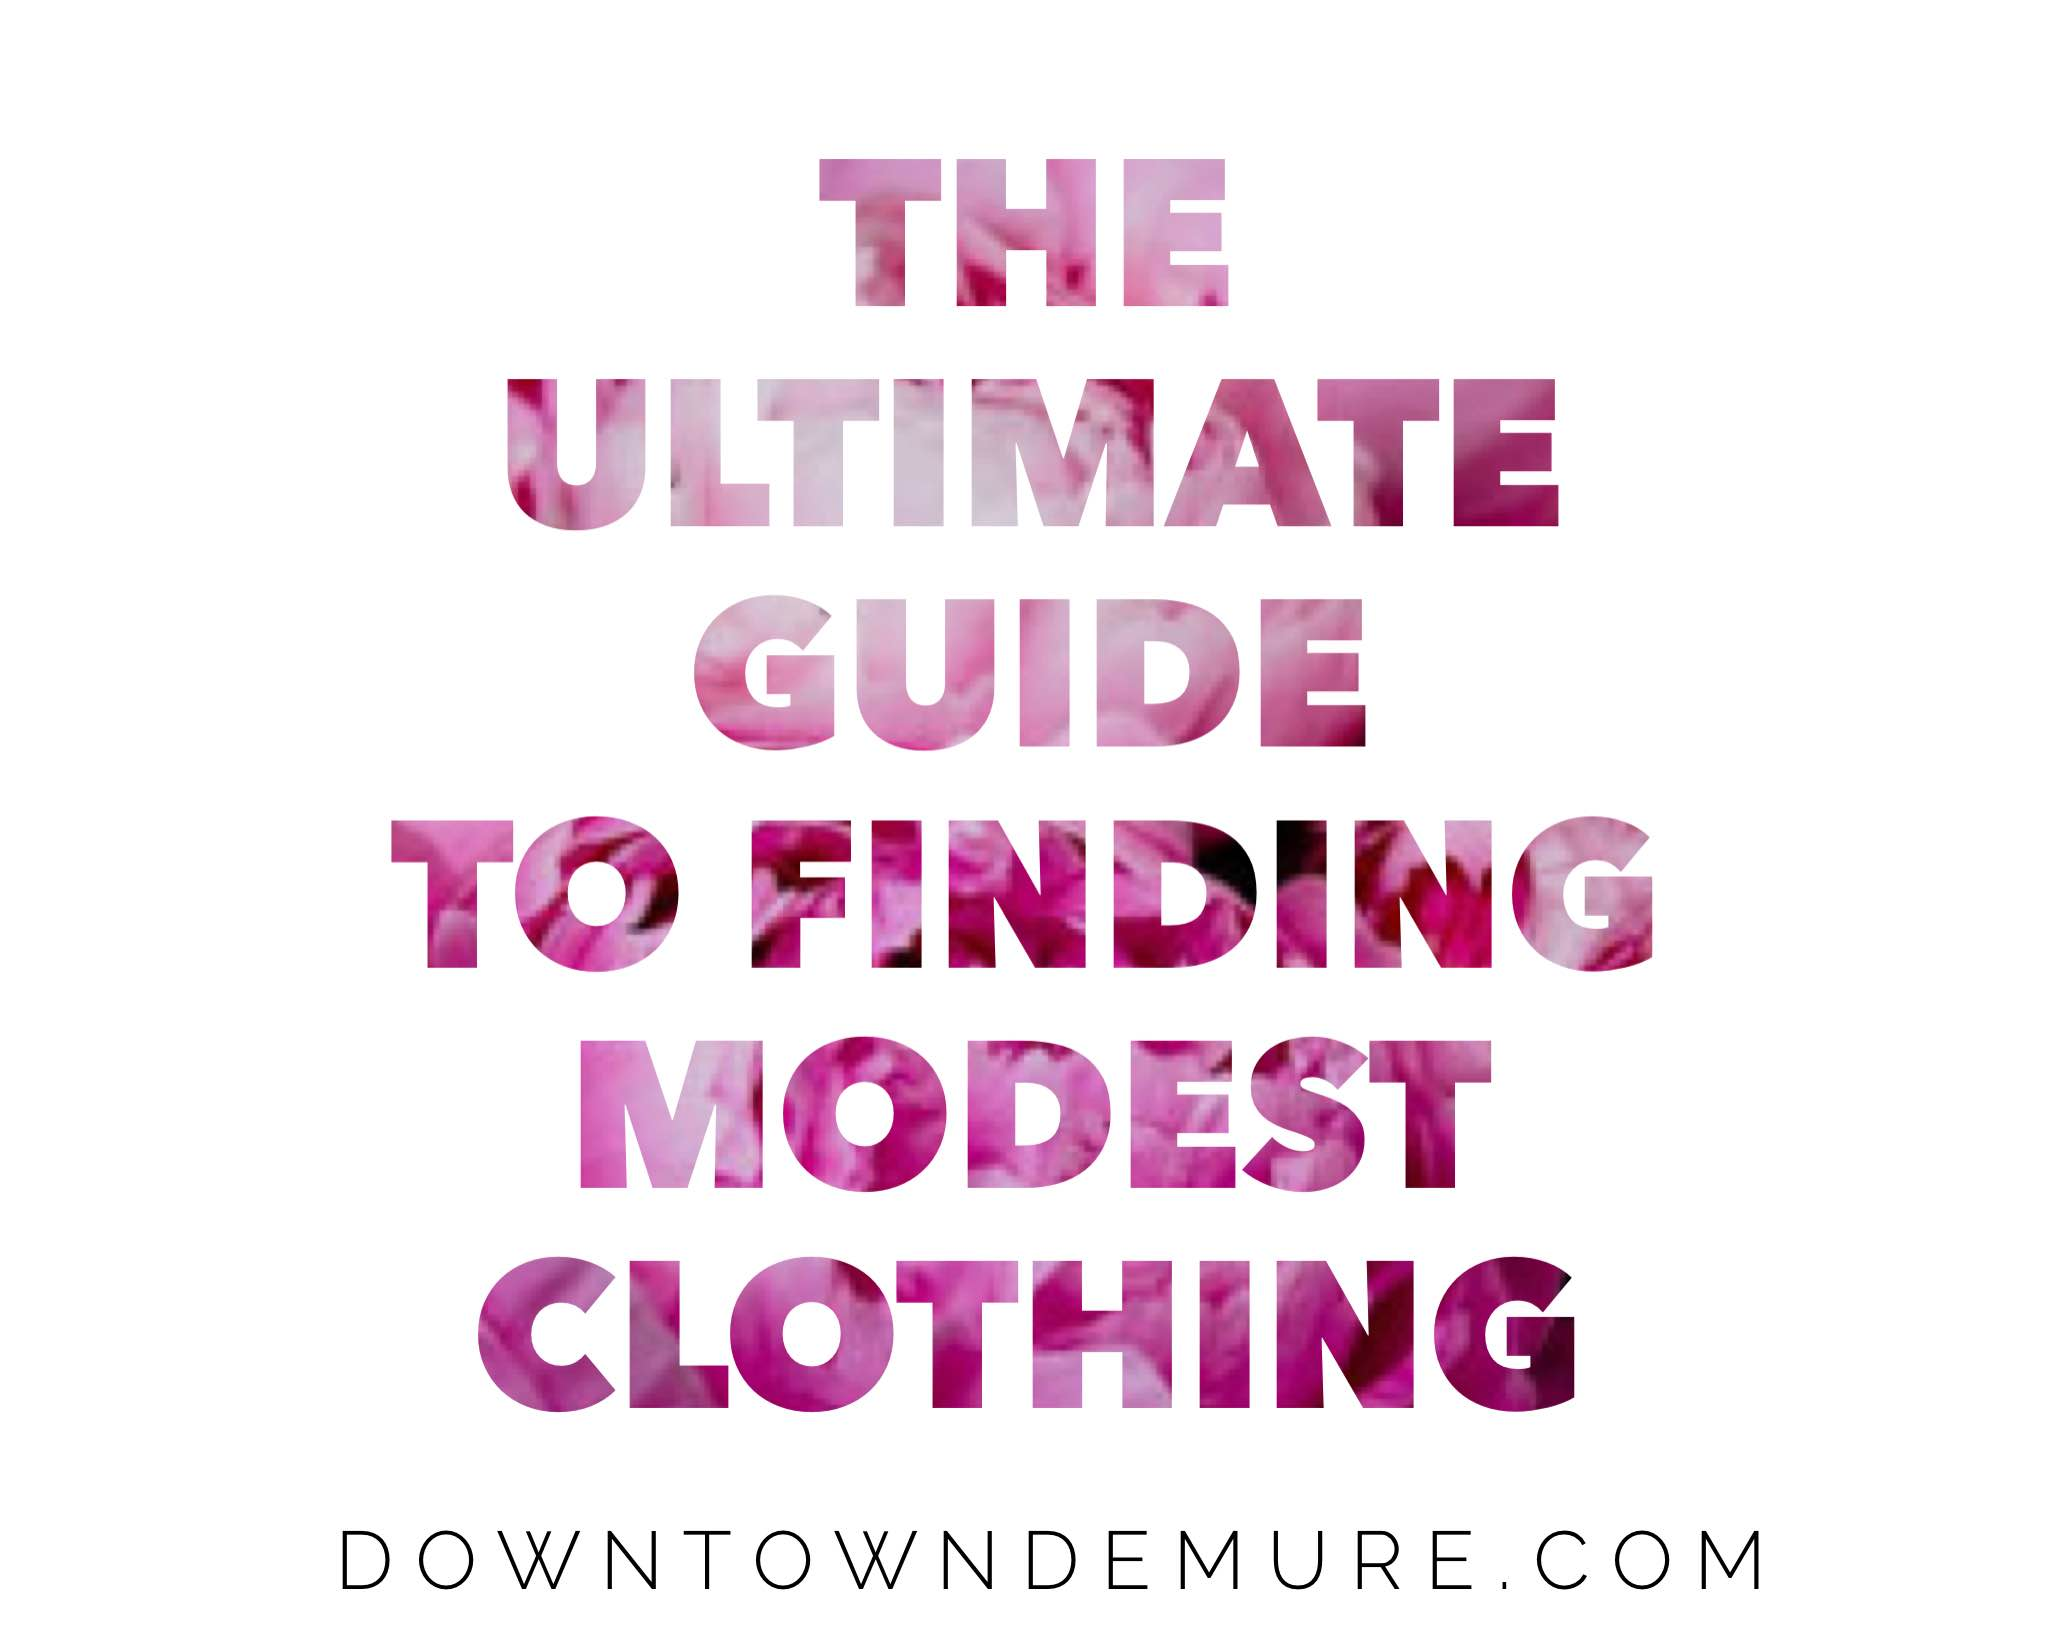 The Ultimate Guide to Finding Modest Clothing via Downtown Demure